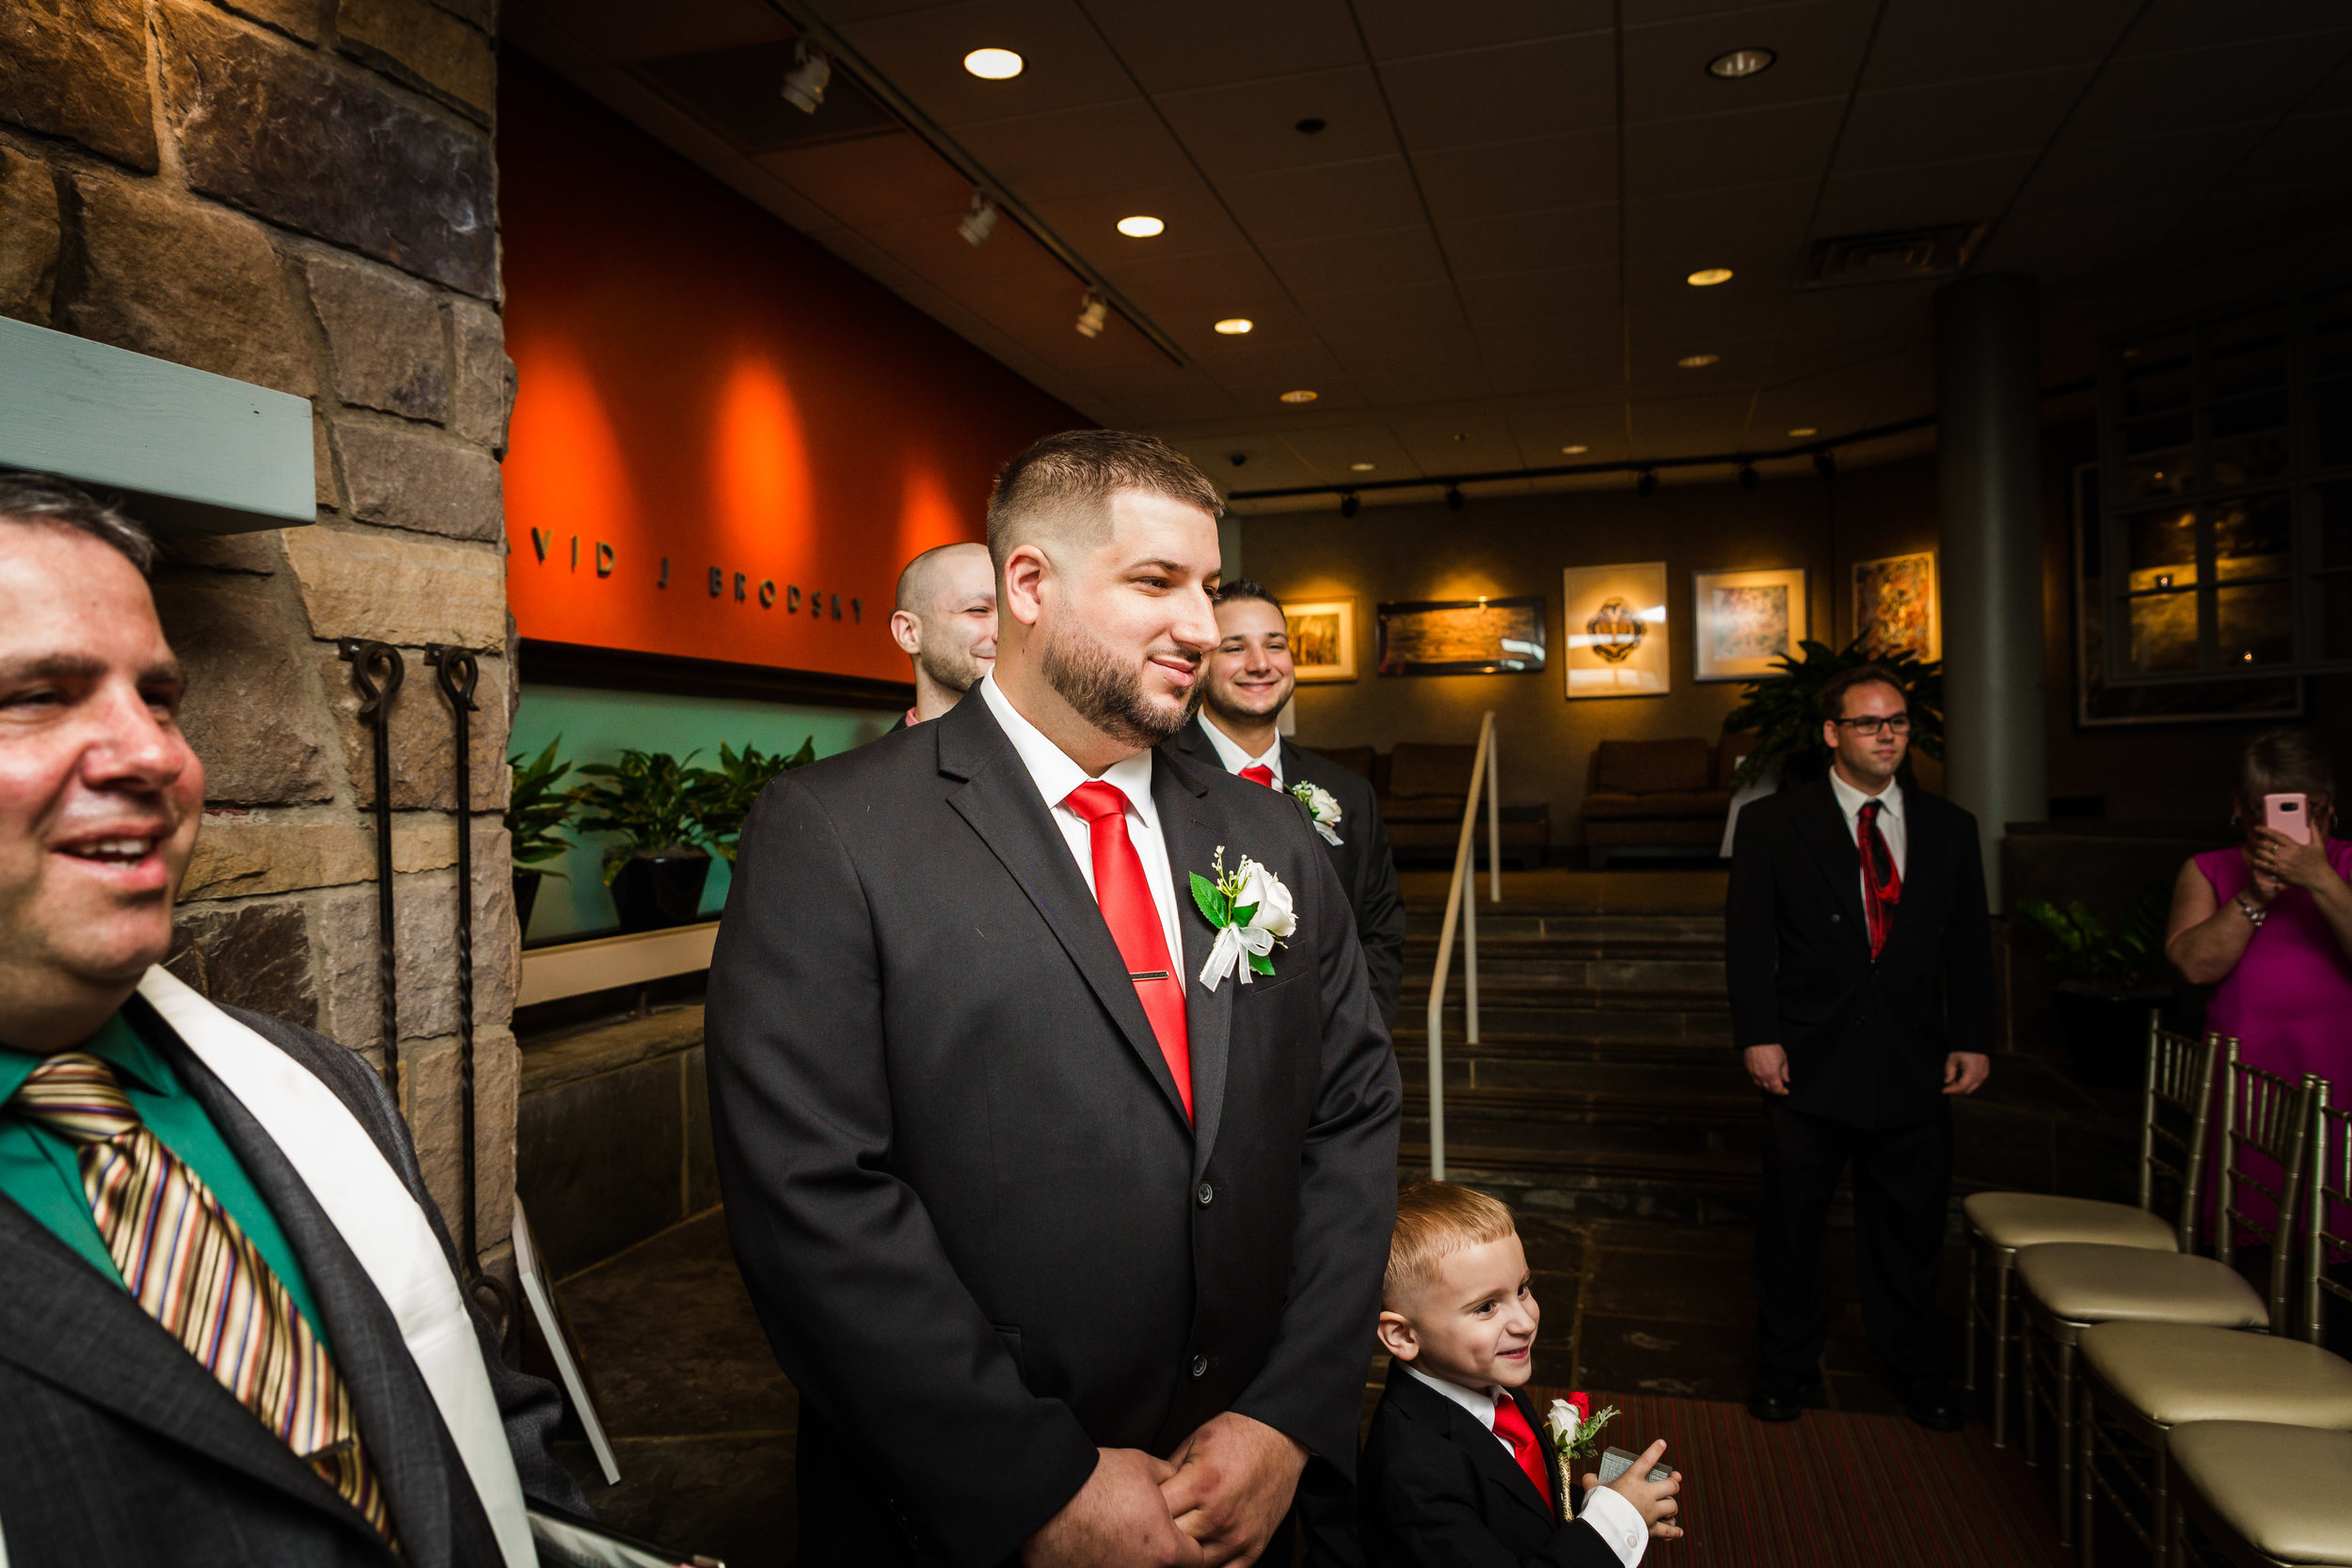 CHAUNCEY HOTEL AND CONFERENCE CENTER WEDDING PHOTOGRAPHY-48.jpg